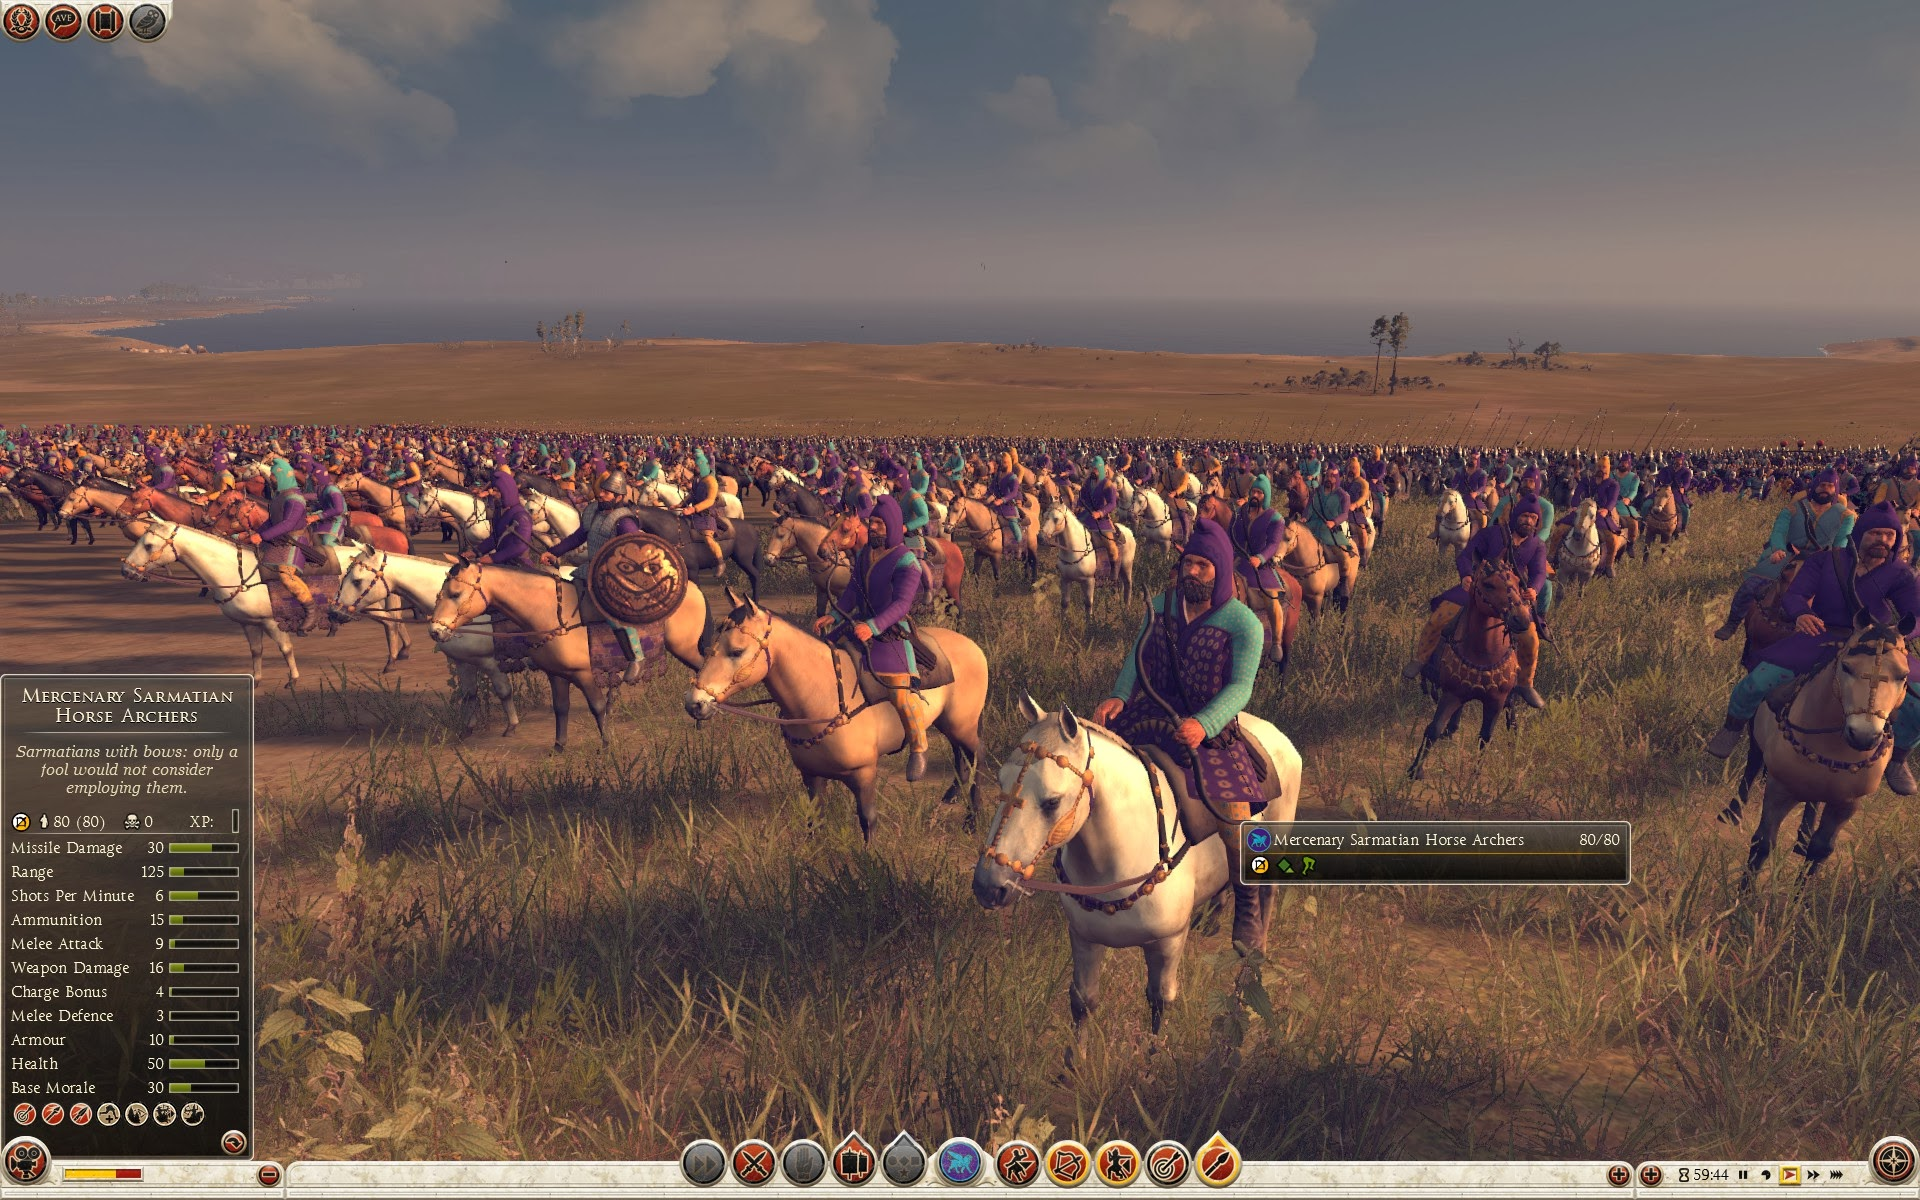 Mercenary Sarmatian Horse Archers